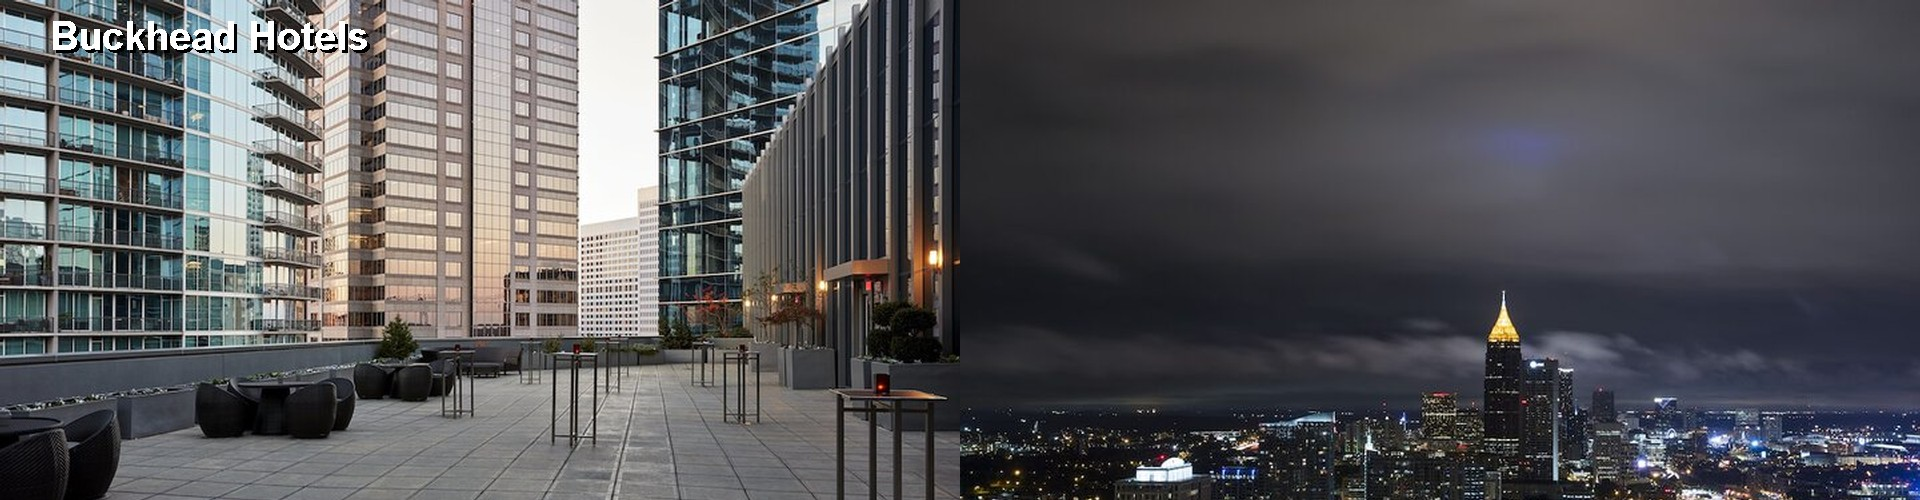 5 Best Hotels near Buckhead